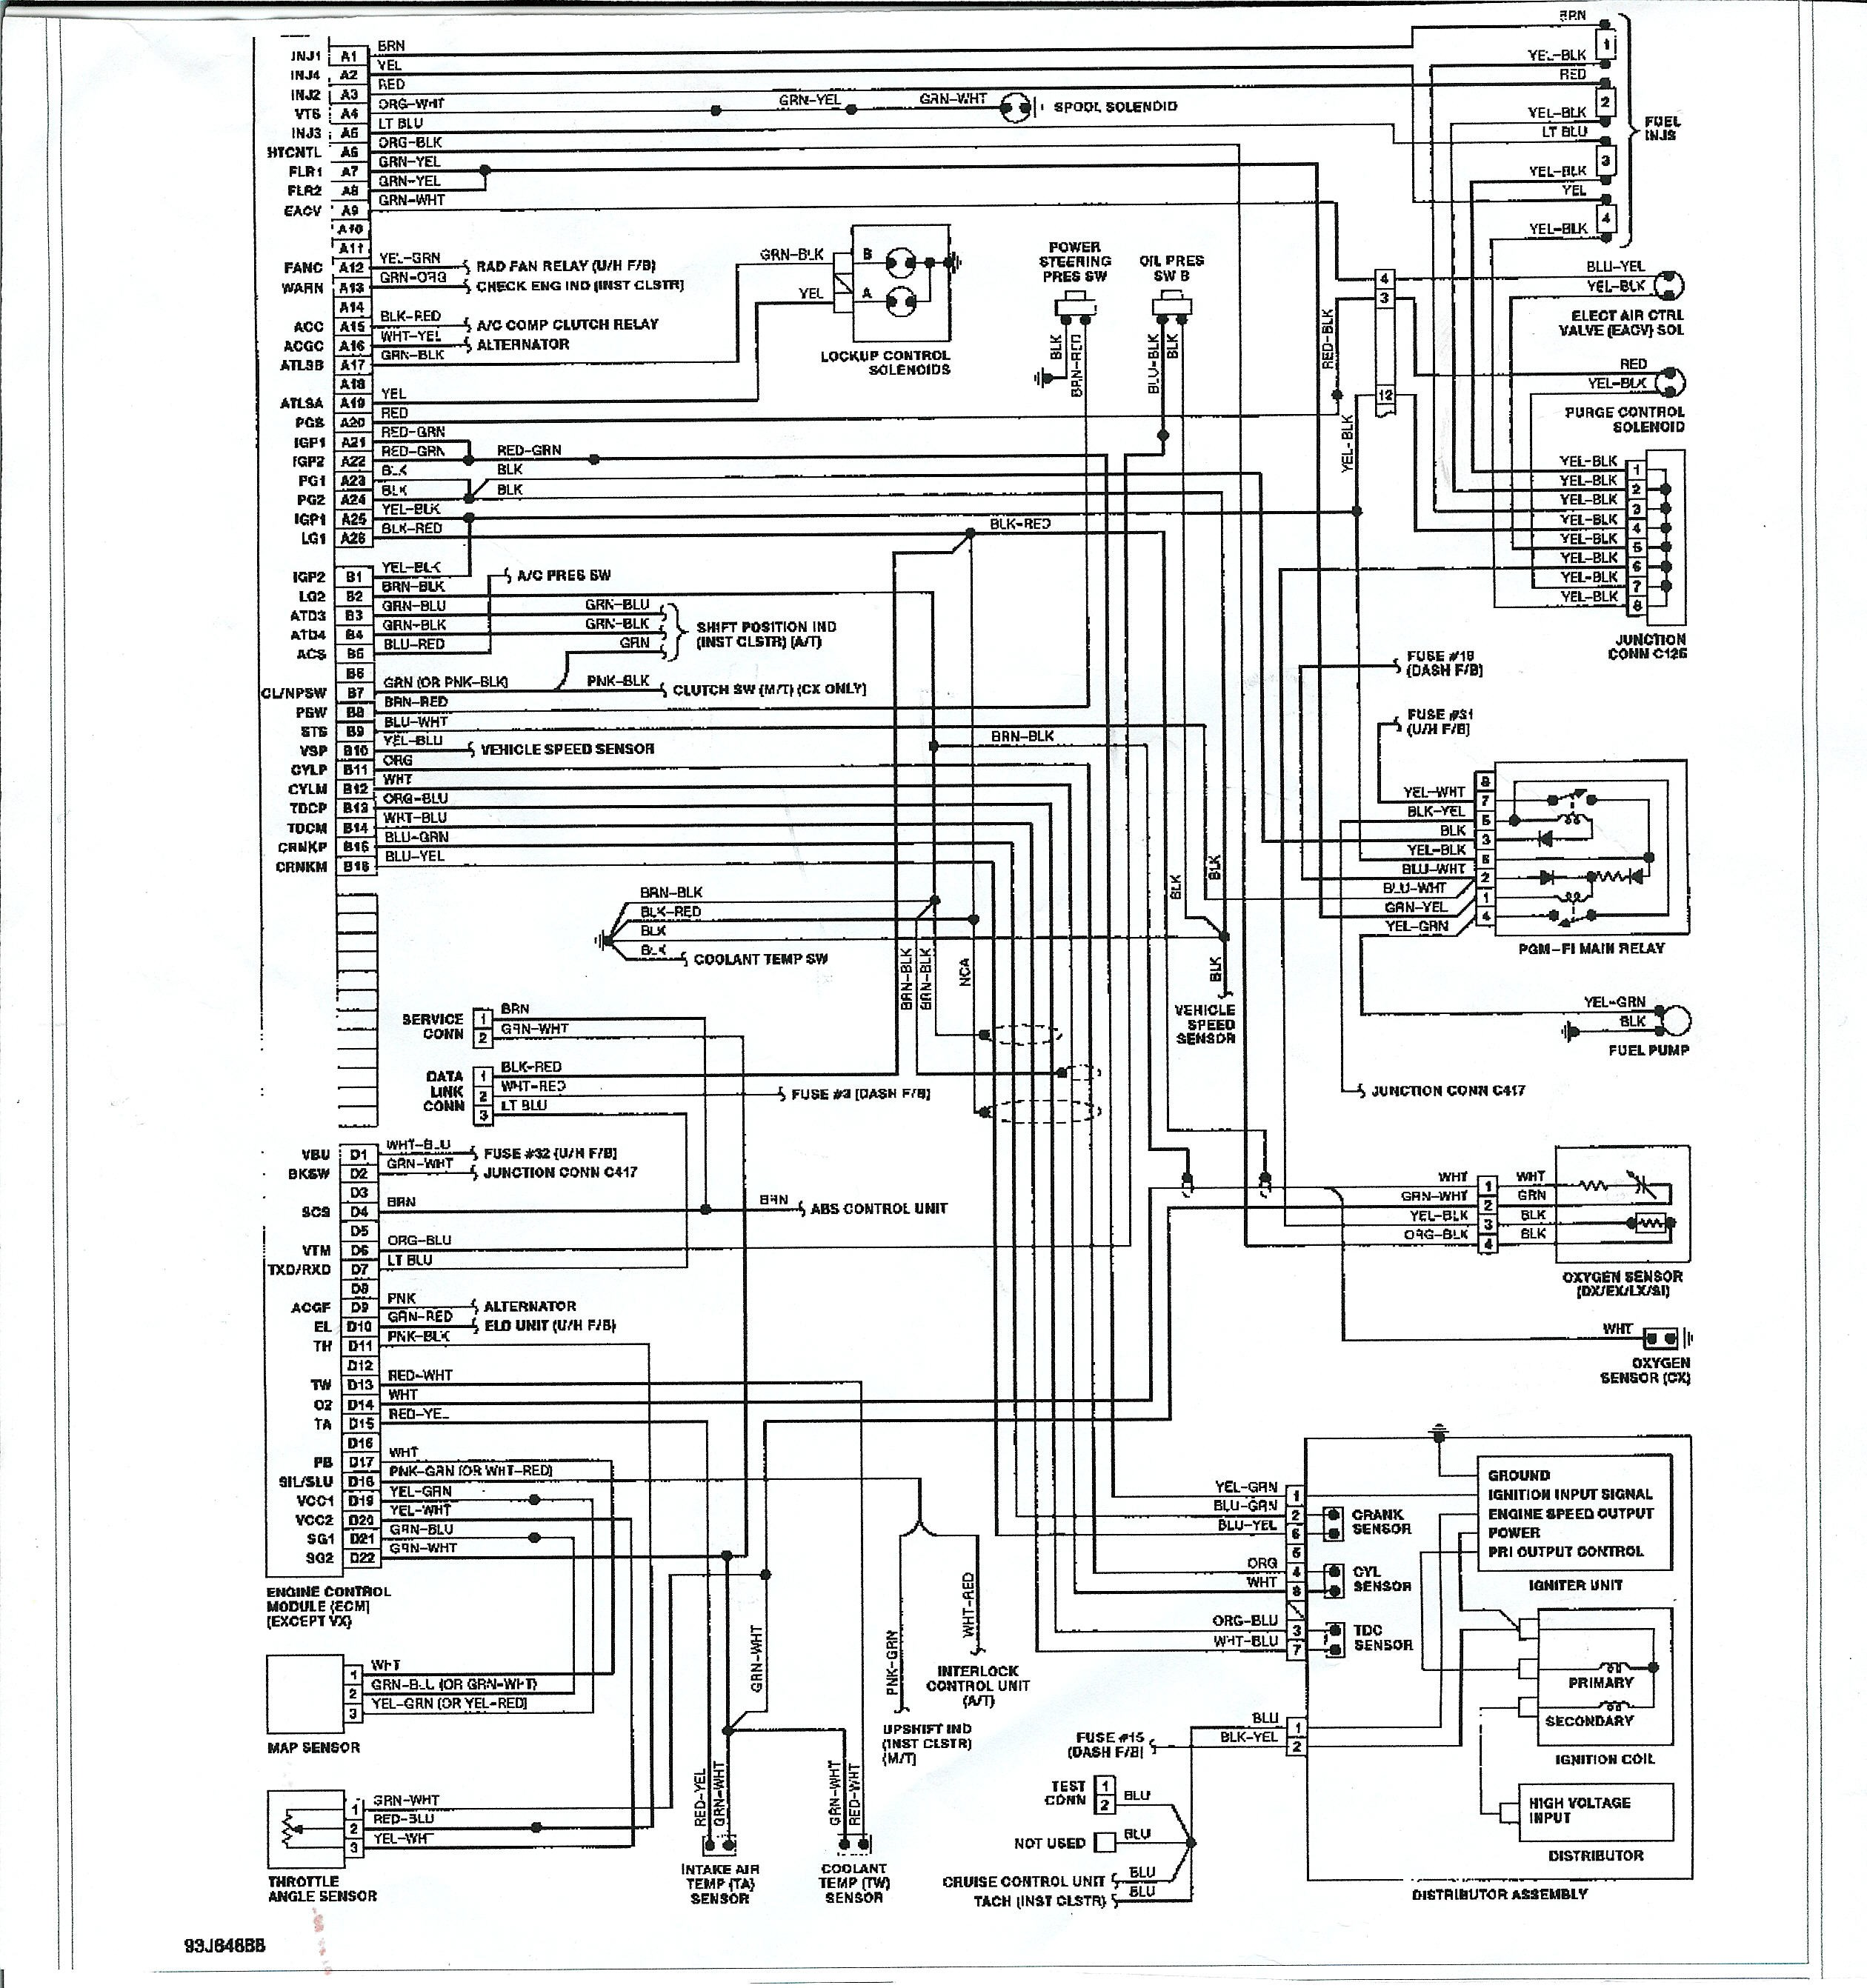 electrical wiring diagram 1998 honda civic 2002 honda civic transmission diagram wiring schematic ... 1998 honda civic fuel filter location #15